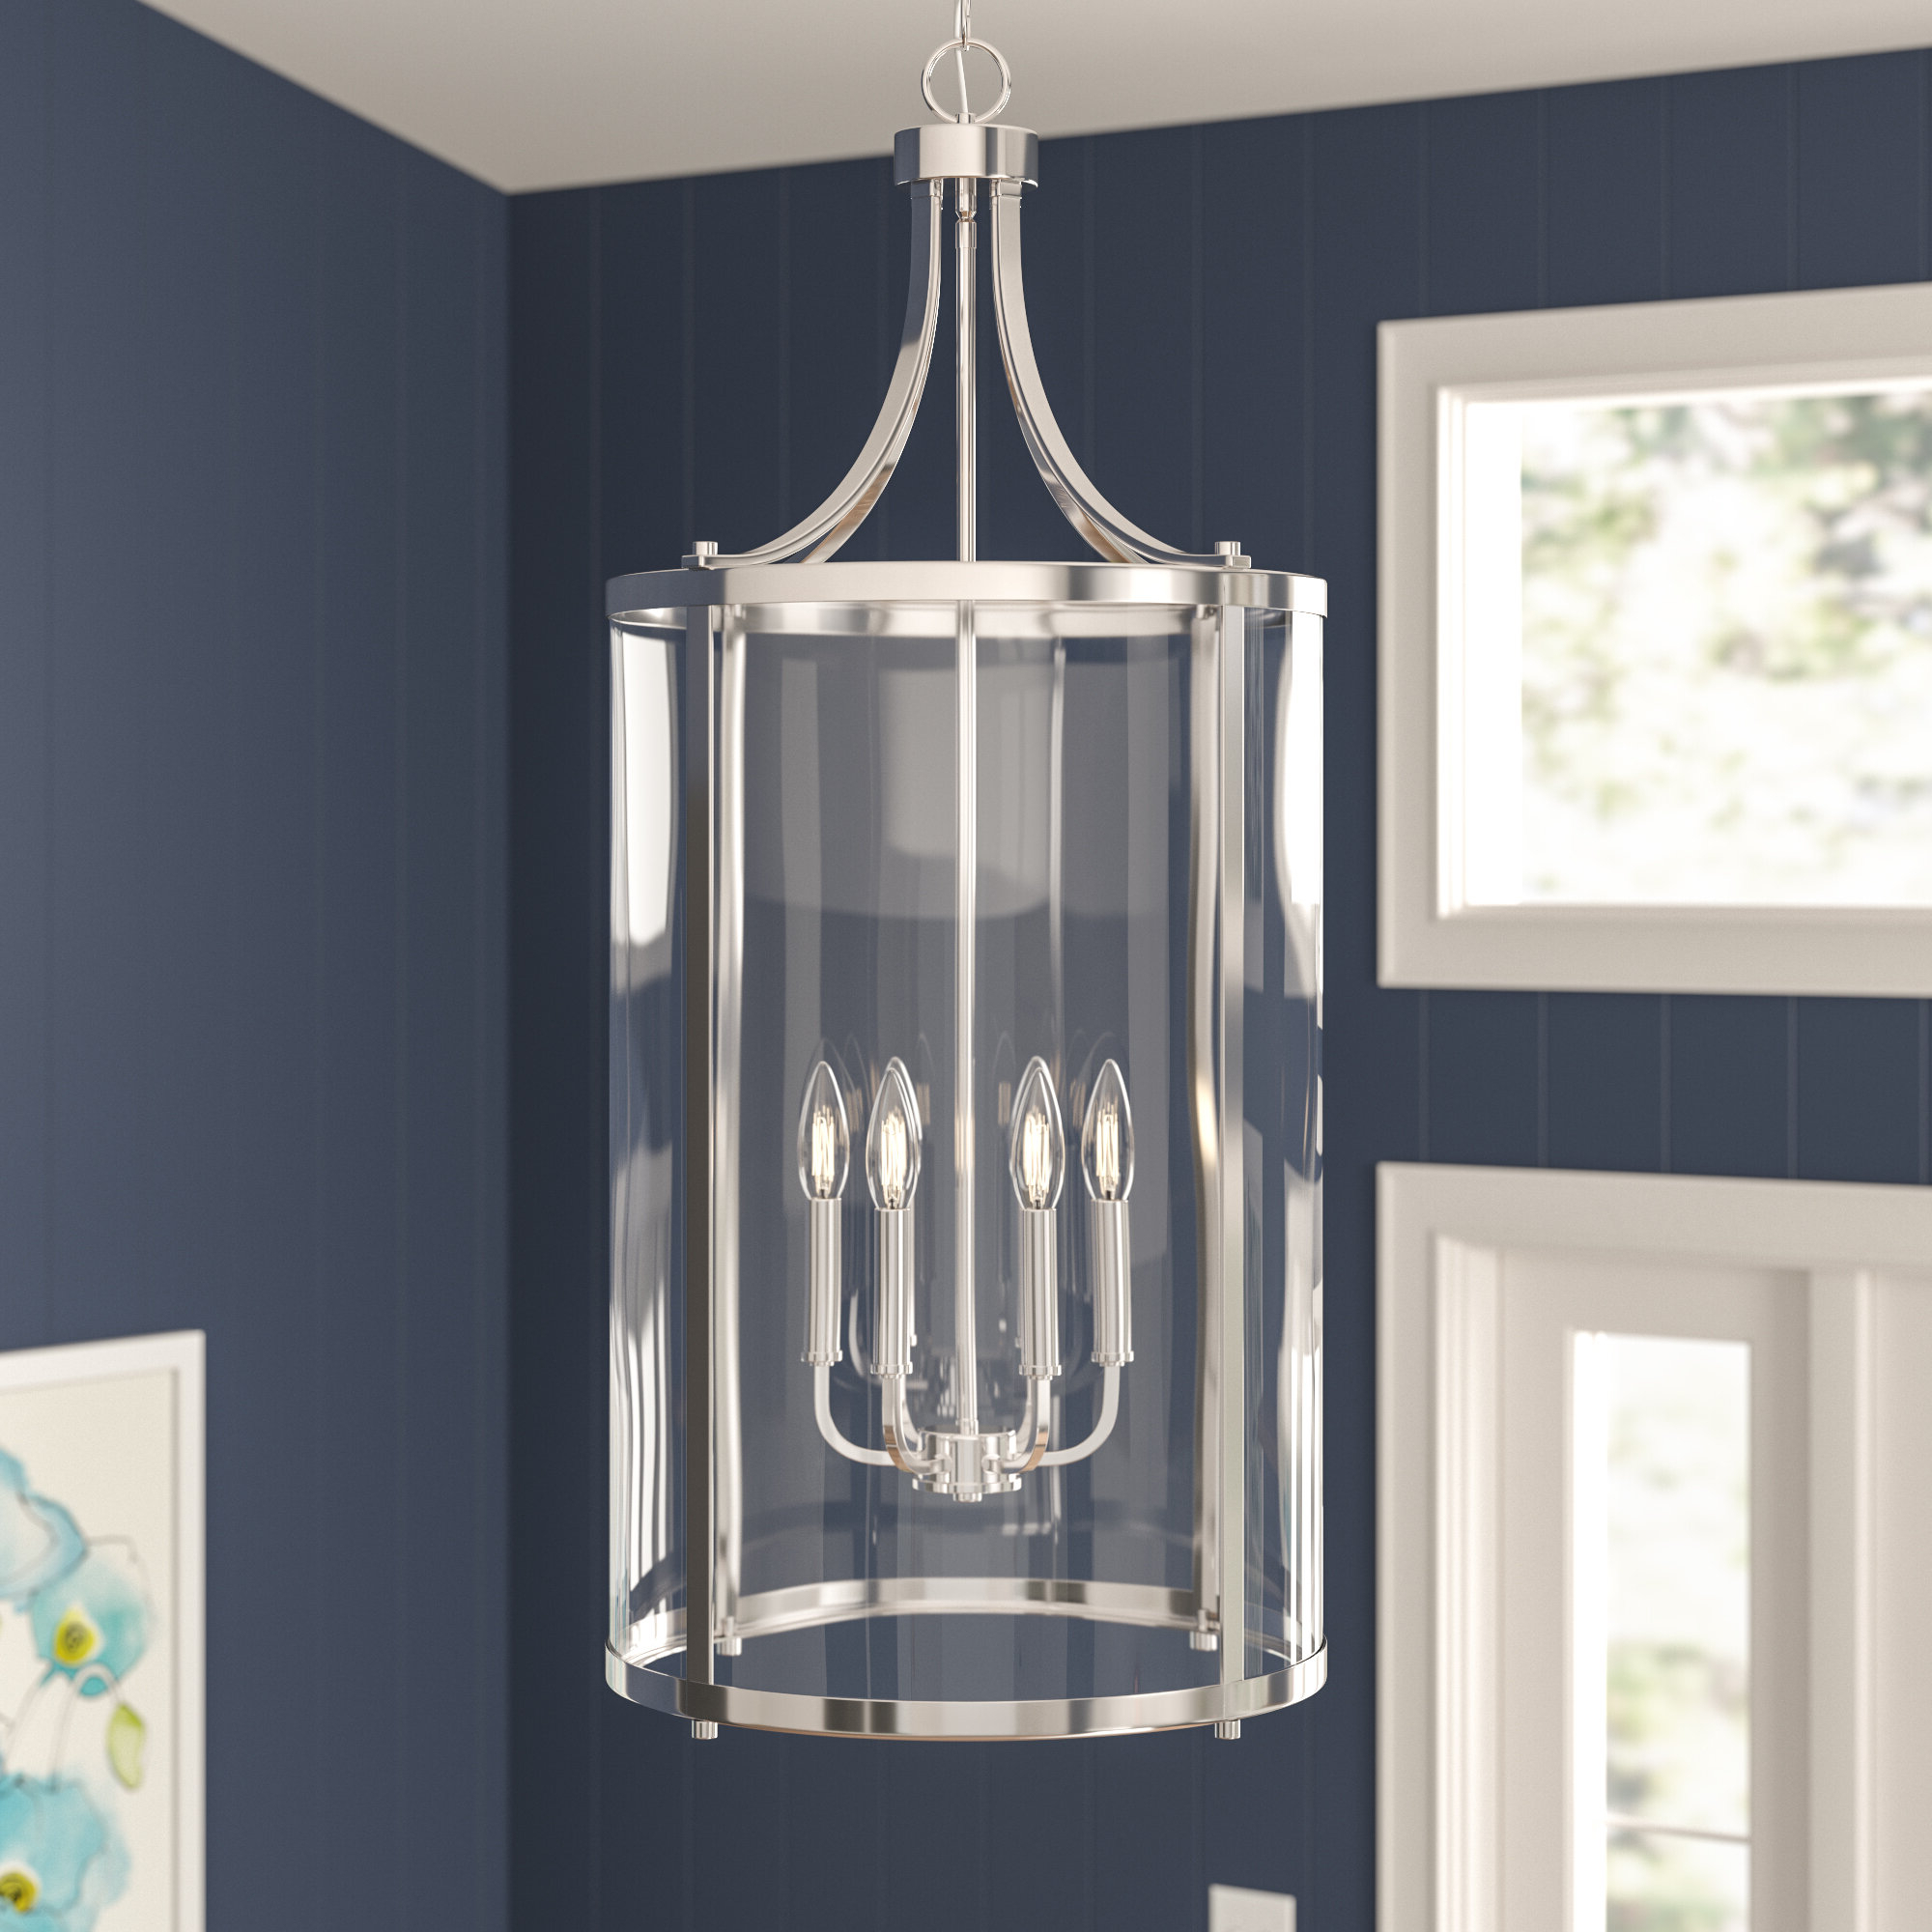 Trendy Three Posts Brookville 6 Light Lantern Pendant Intended For Nisbet 6 Light Lantern Geometric Pendants (View 20 of 20)